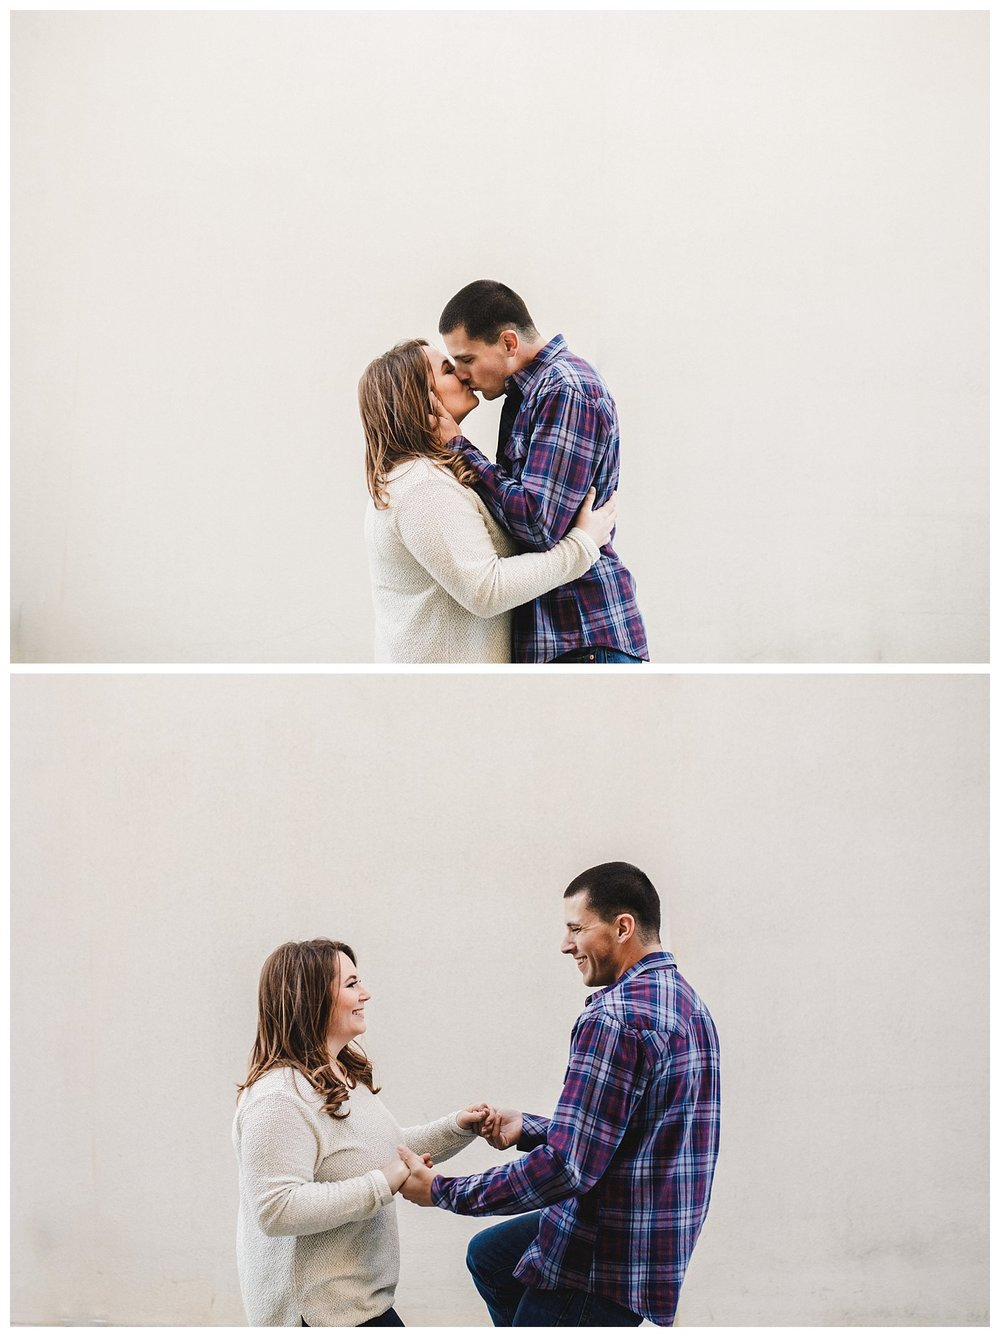 Kelsey_Diane_Photography_T-Bones_Stadium_Kansas_Wandering_Adventourus_Kansas_City_Engagement_0099.jpg